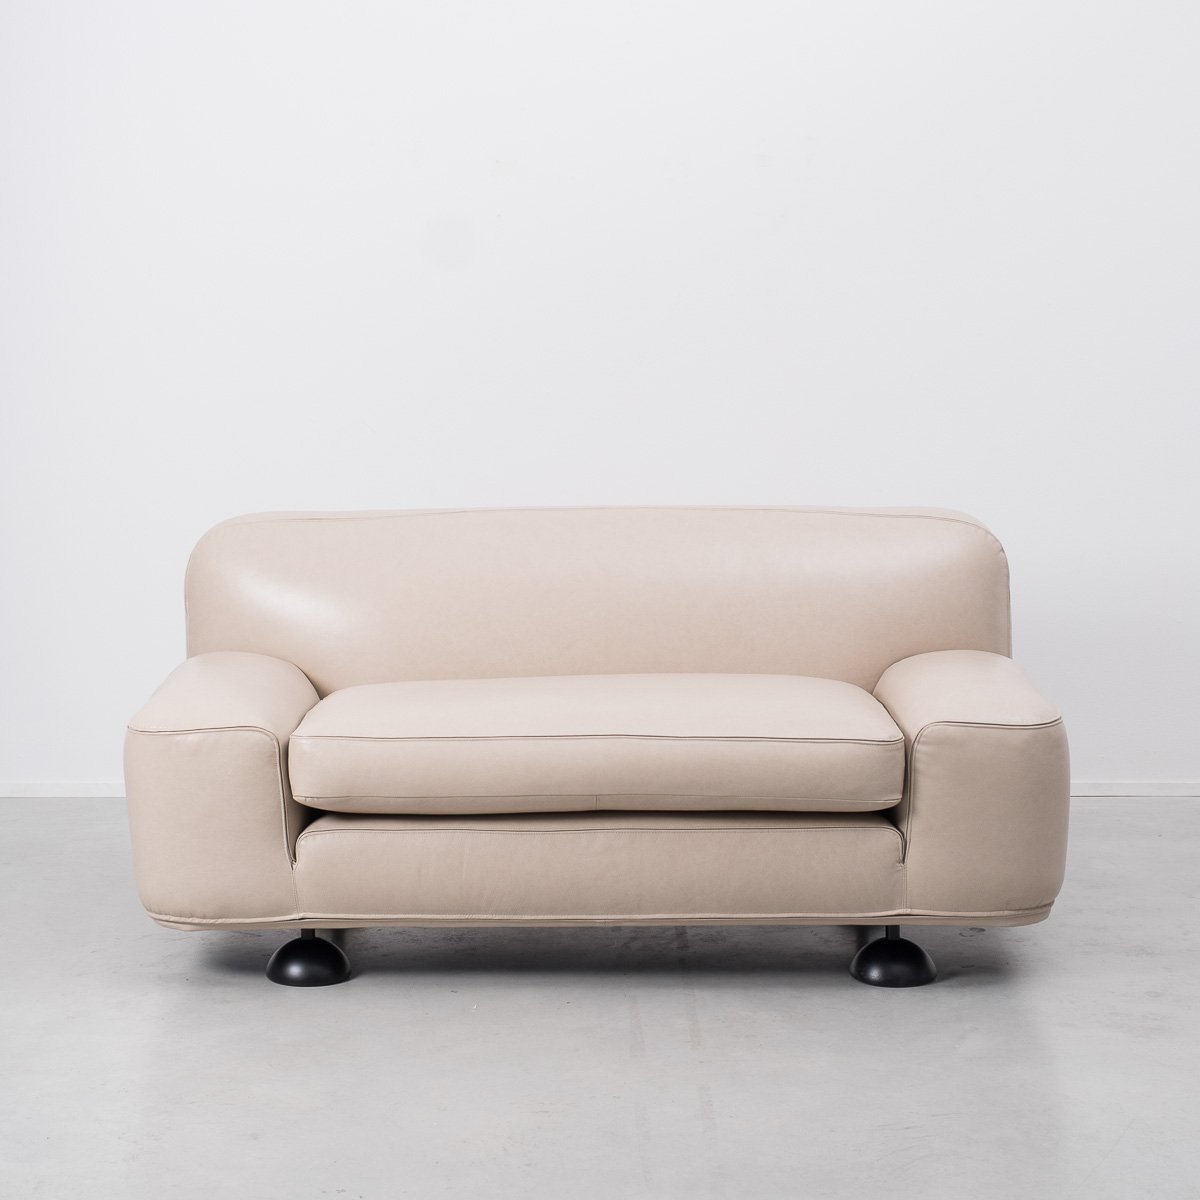 Charmant Altopiano 2 Seater Leather Sofa By Franco Poli For Bernini, 1960s